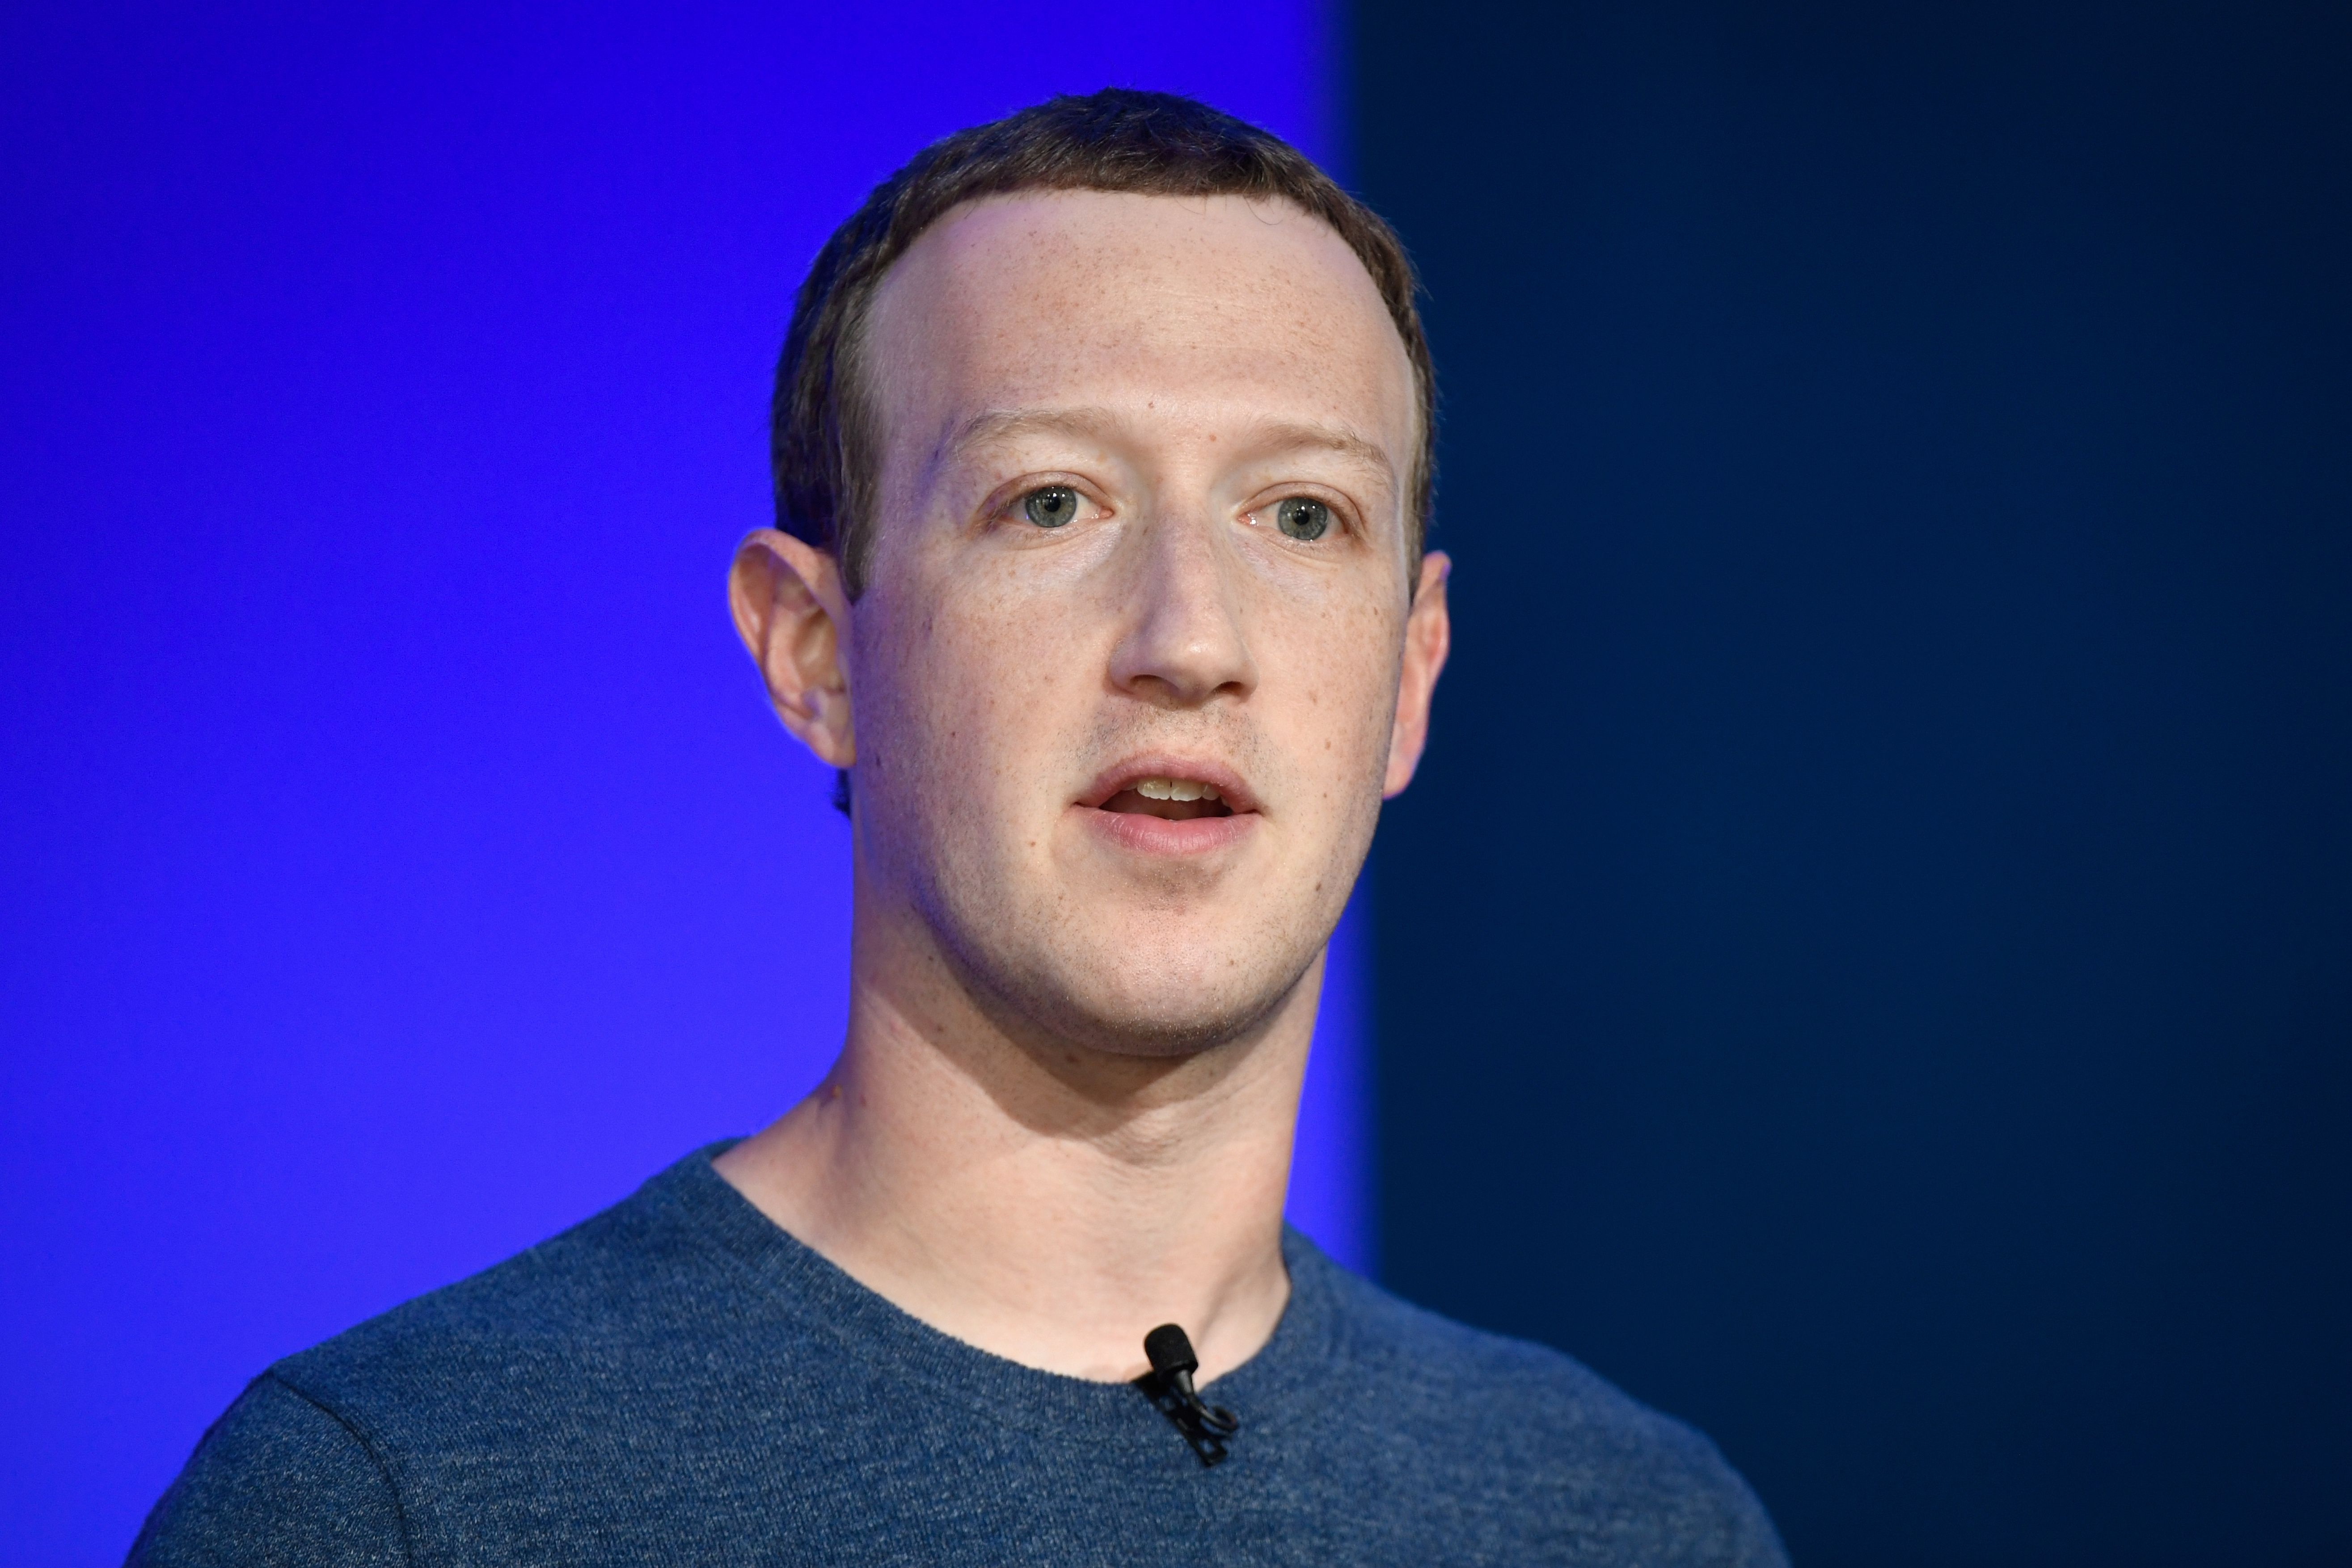 Mark Zuckerberg told Facebook staff 'we need to inflict pain' on Apple in 2018, according to reports